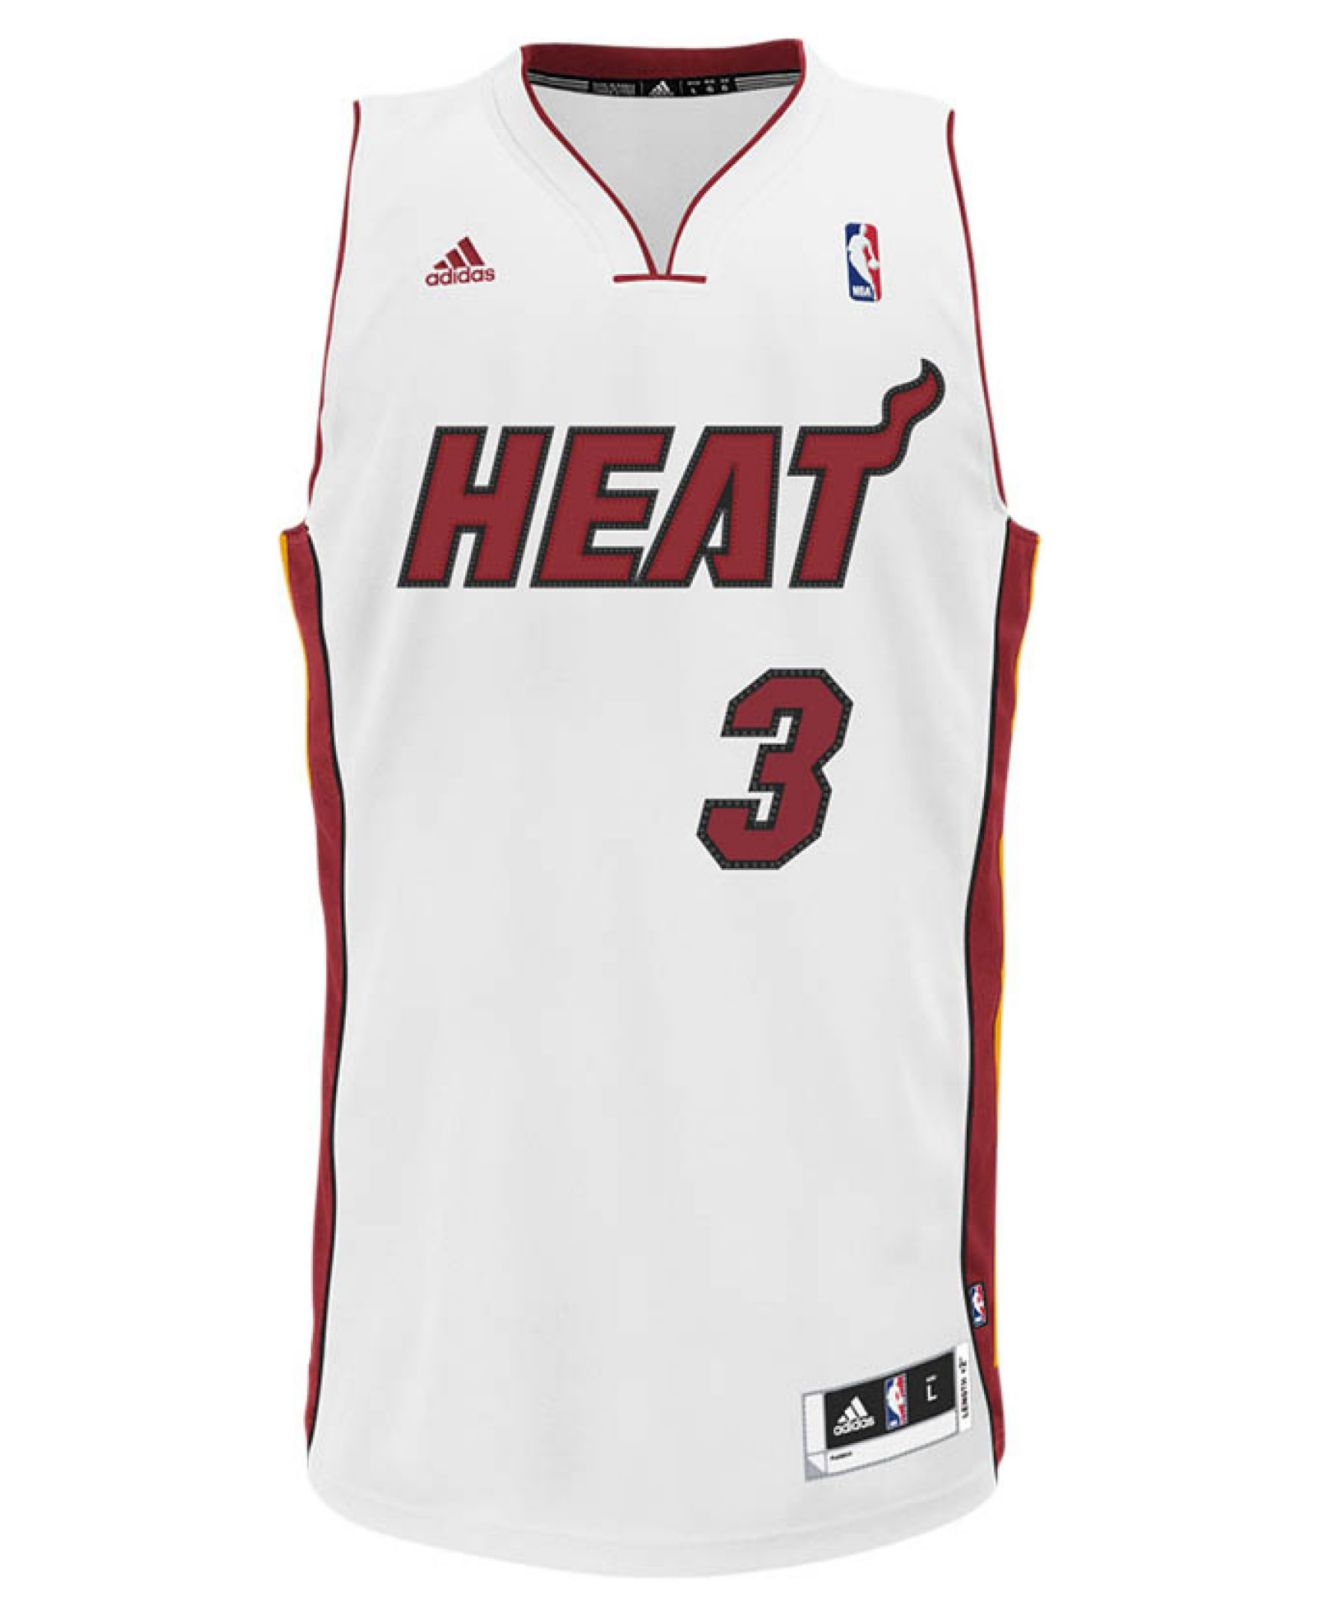 8d1142b2881 adidas Originals Men s Miami Heat Dwyane Wade Jersey in White for ...